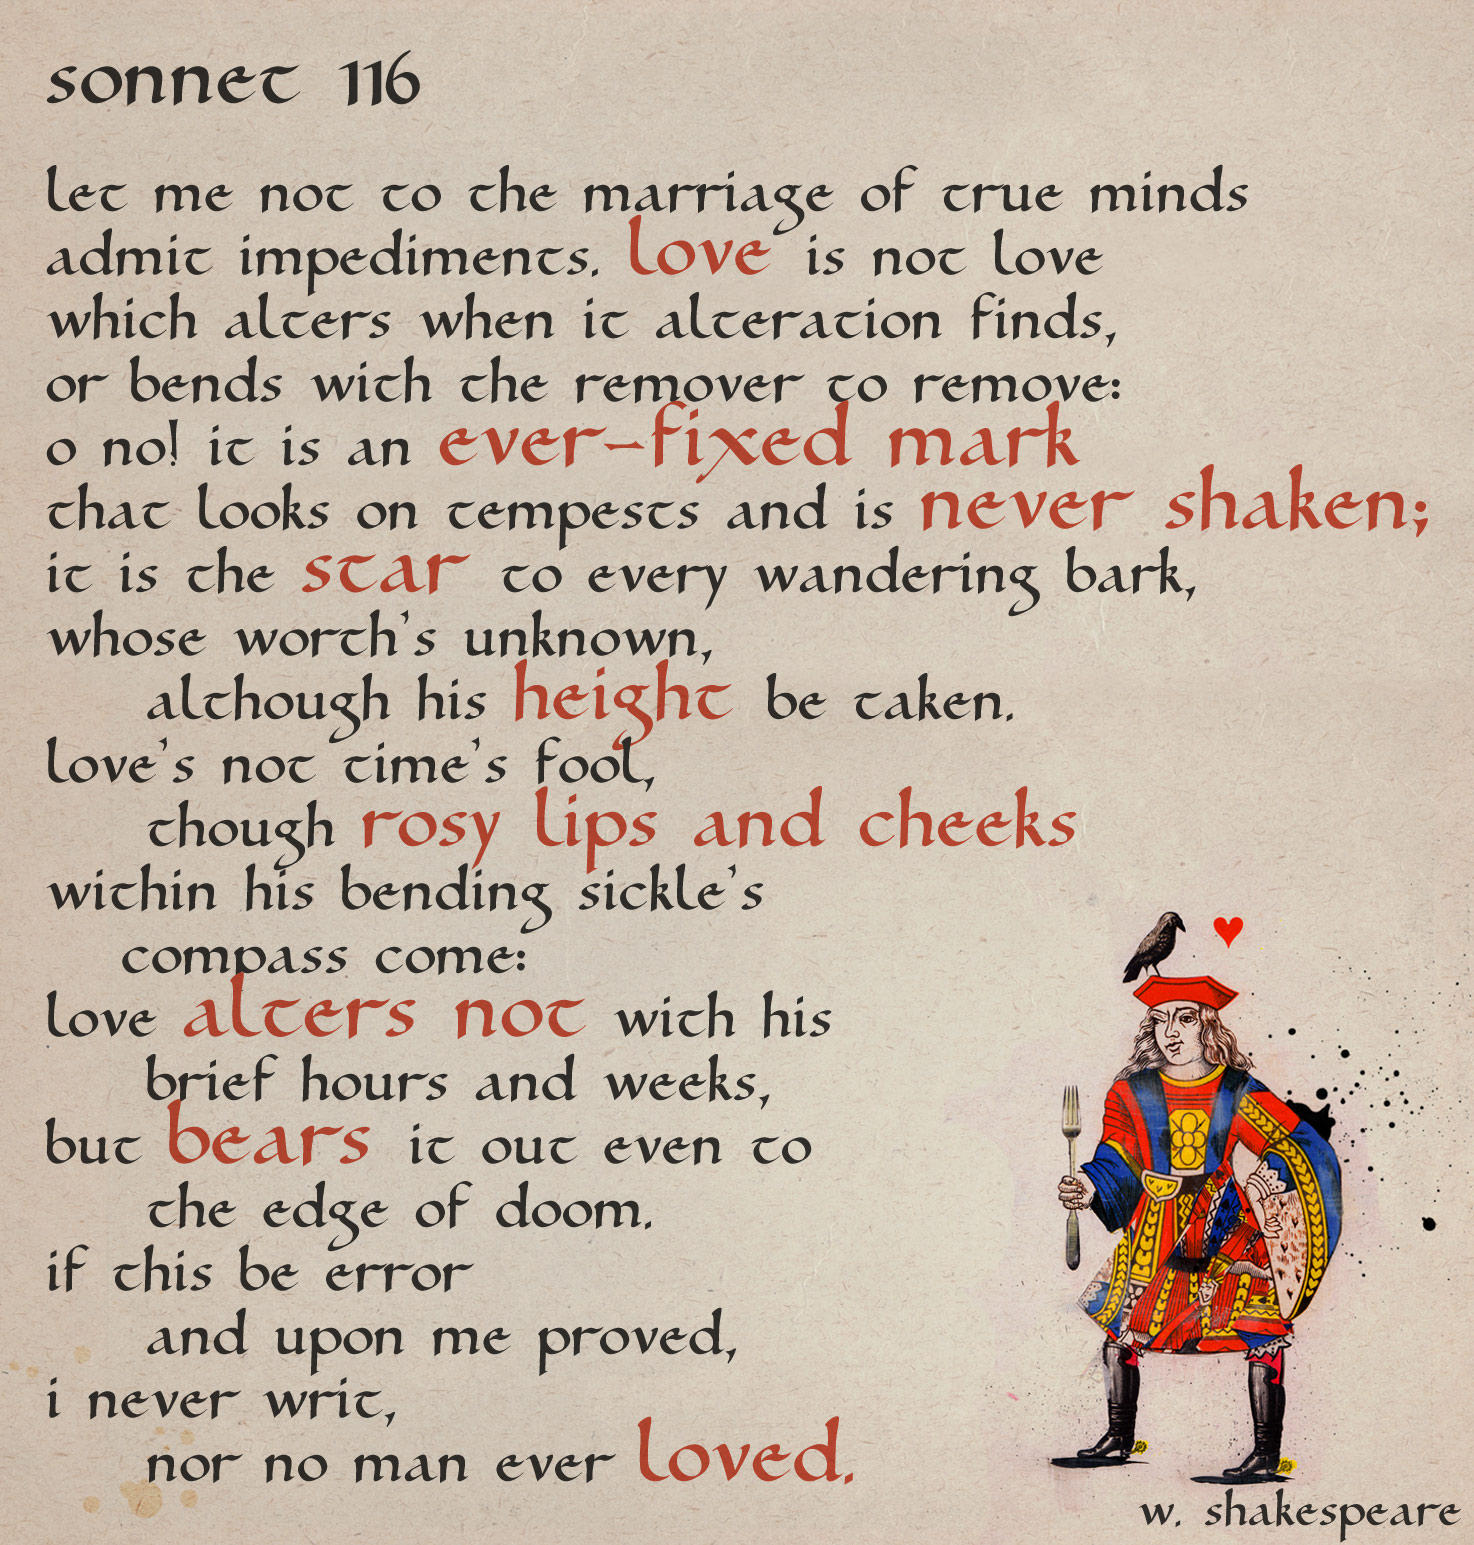 the definition of love in william shakespeares sonnet 116 and raymond carvers what we talk about whe Search the history of over 325 billion web pages on the internet.